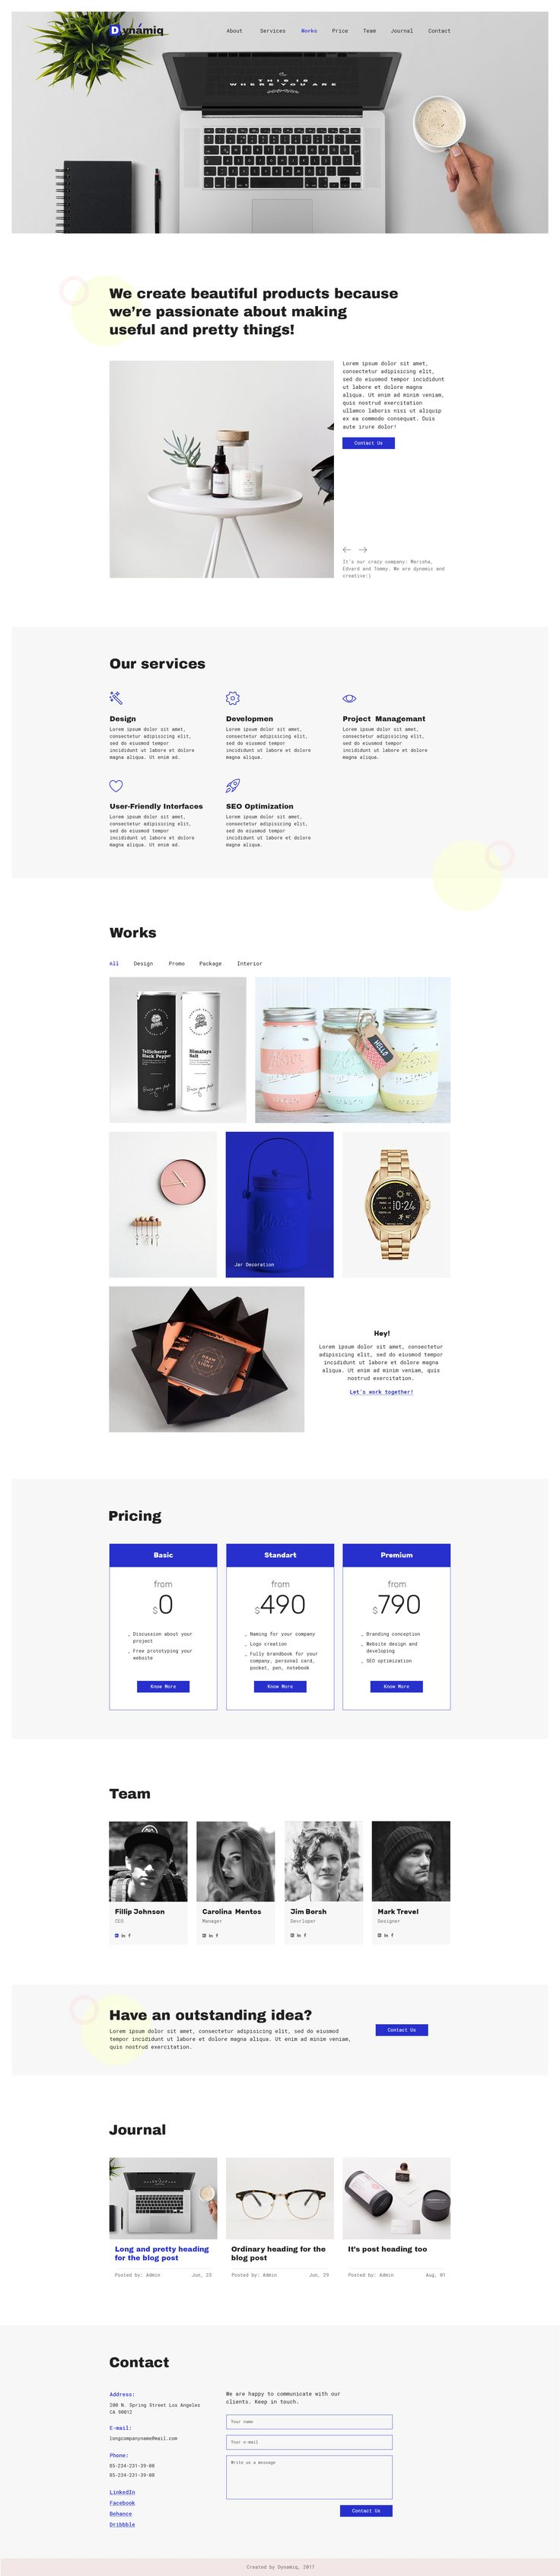 Dynamiq — Minimal and Creative Multipurpose Agency/Personal PSD Template by Aspirity